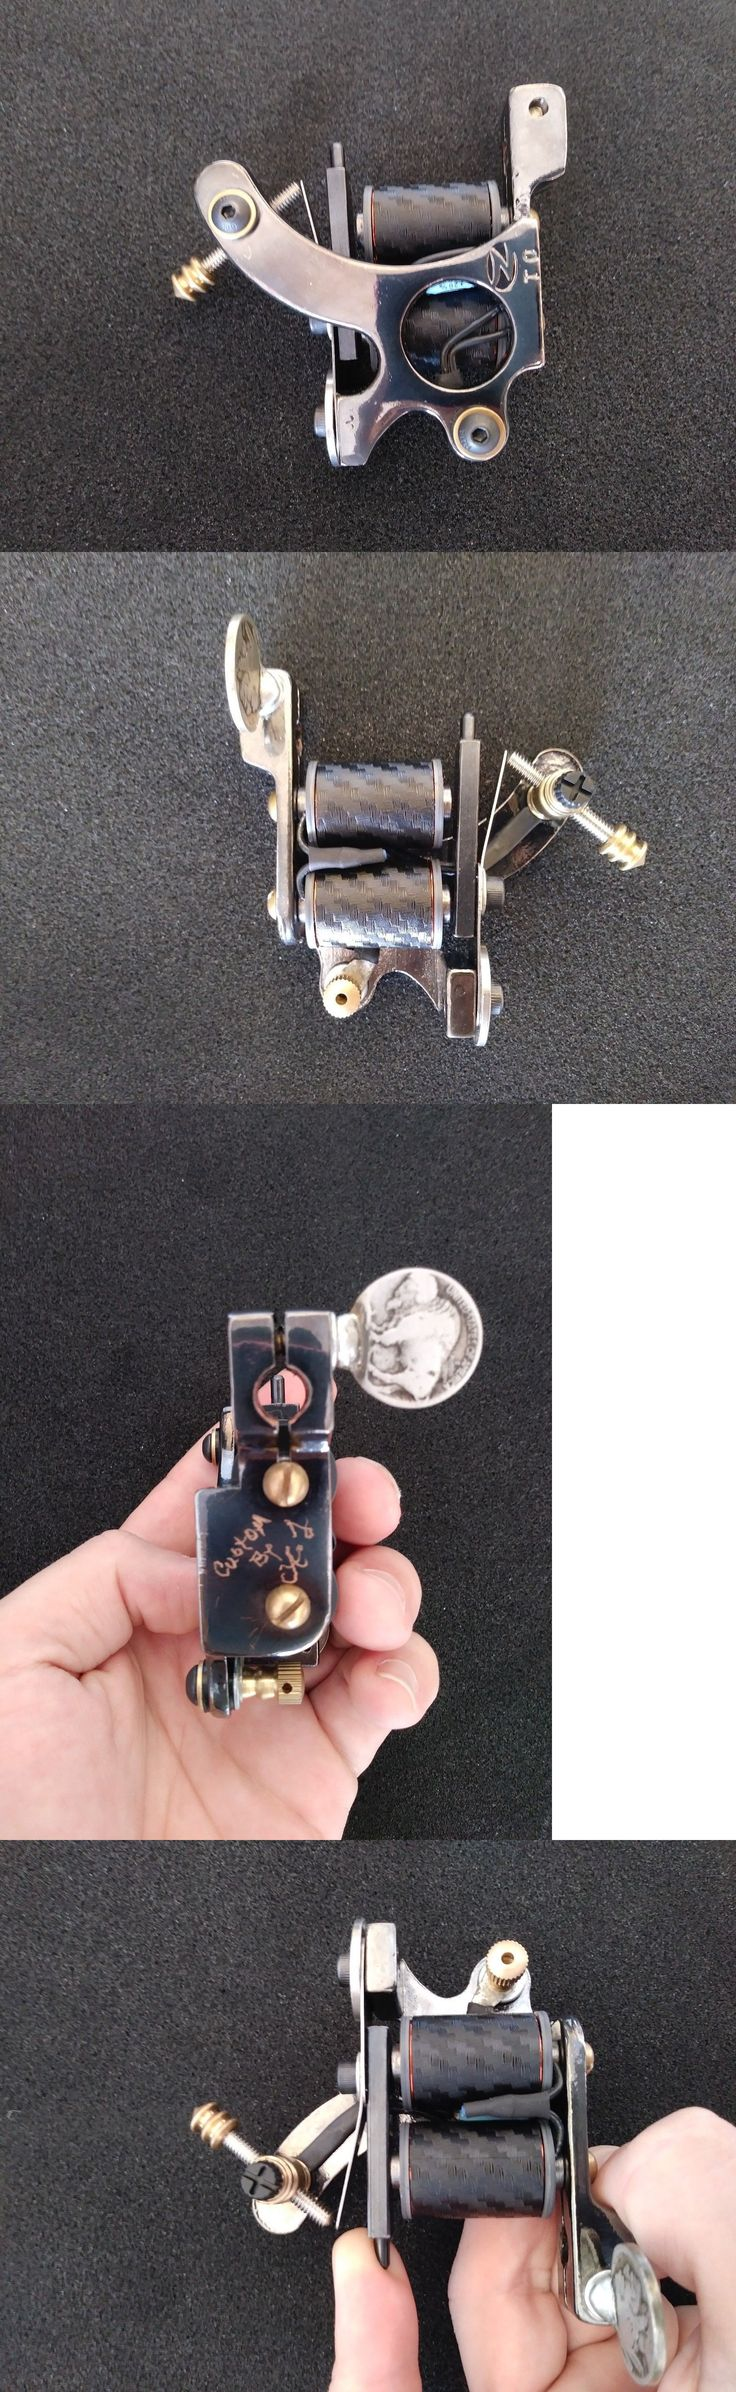 Tattoo Machines and Parts: Custom Coil Tattoo Machine -> BUY IT NOW ONLY: $60 on eBay!